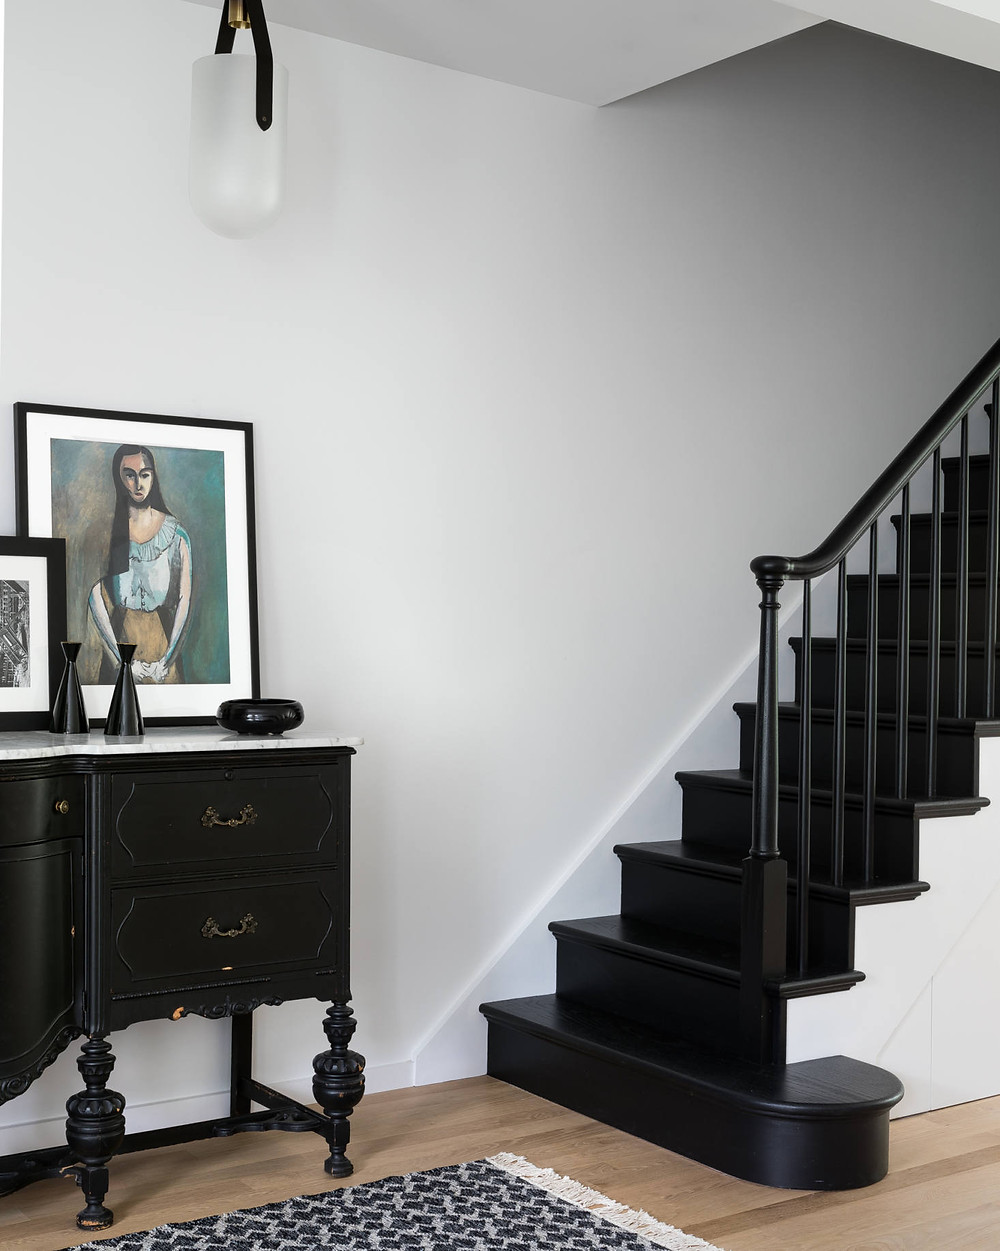 The architects freshened up the whole home with a coat of Benjamin Moore Decorator's White and painted the entry staircase a glossy black for contrast. The light fixture is Allied Maker's Well Pendant.